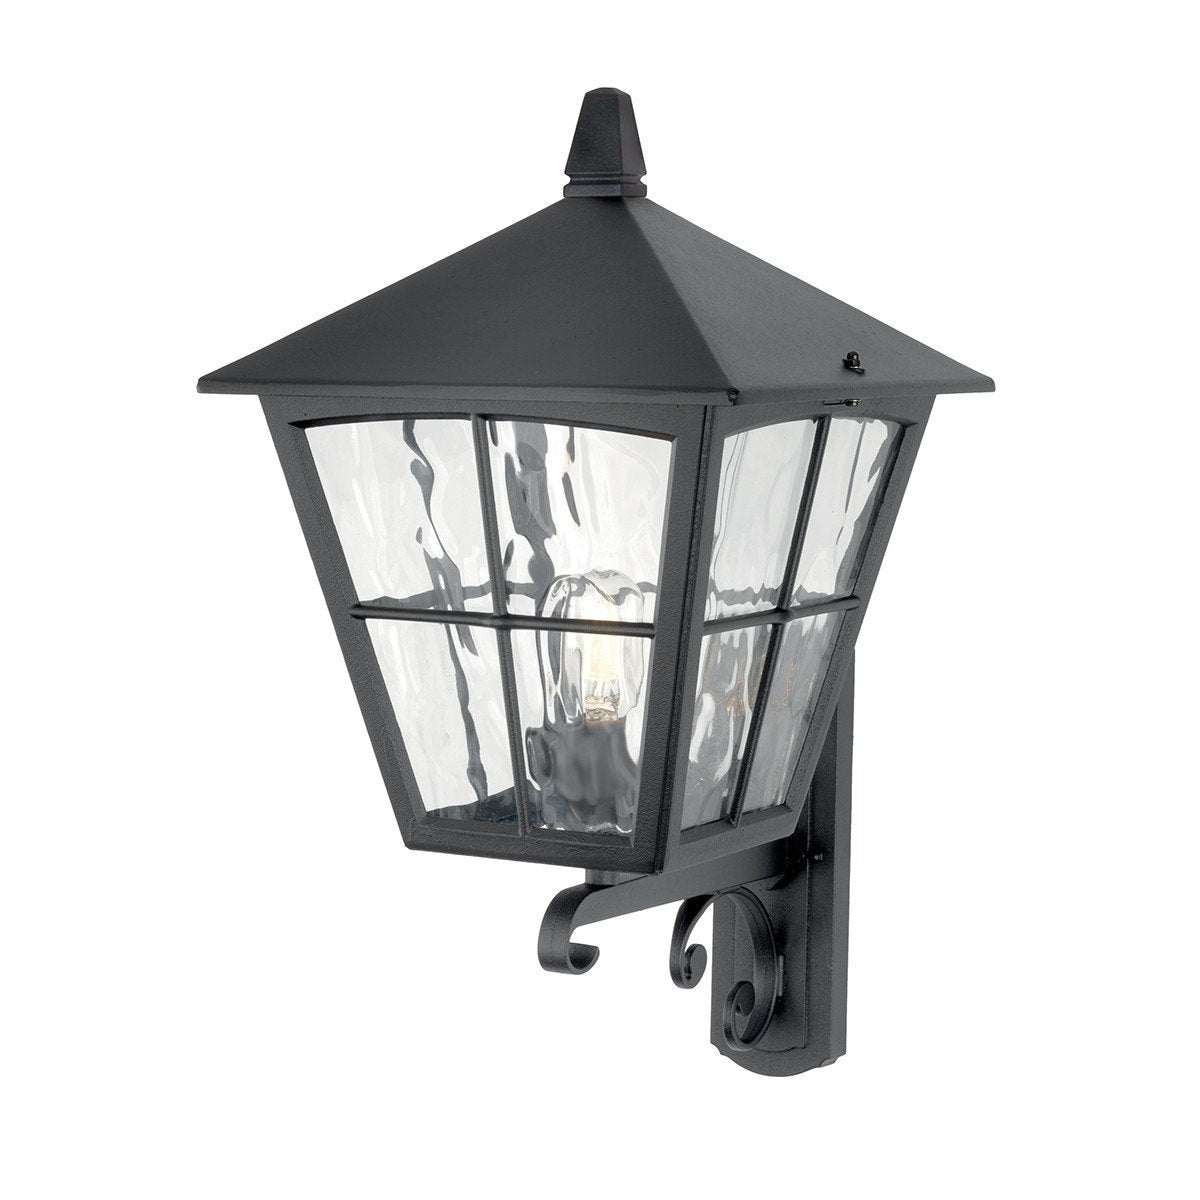 Edinburgh Wall Up Lantern Black - London Lighting - 1